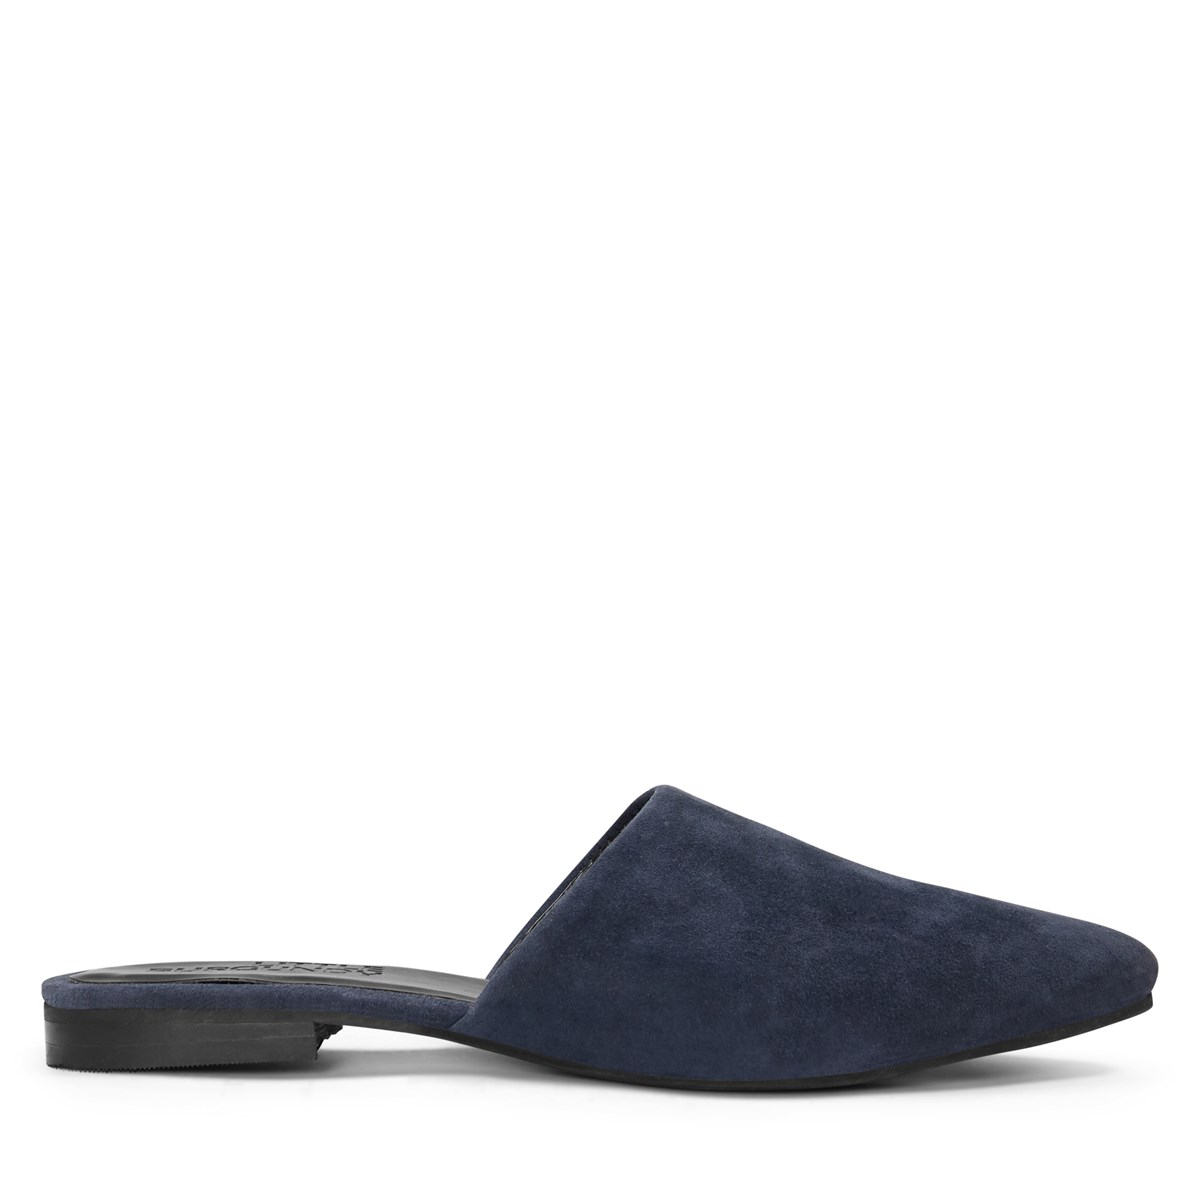 Women's Mila Closed Toe Mule in Navy